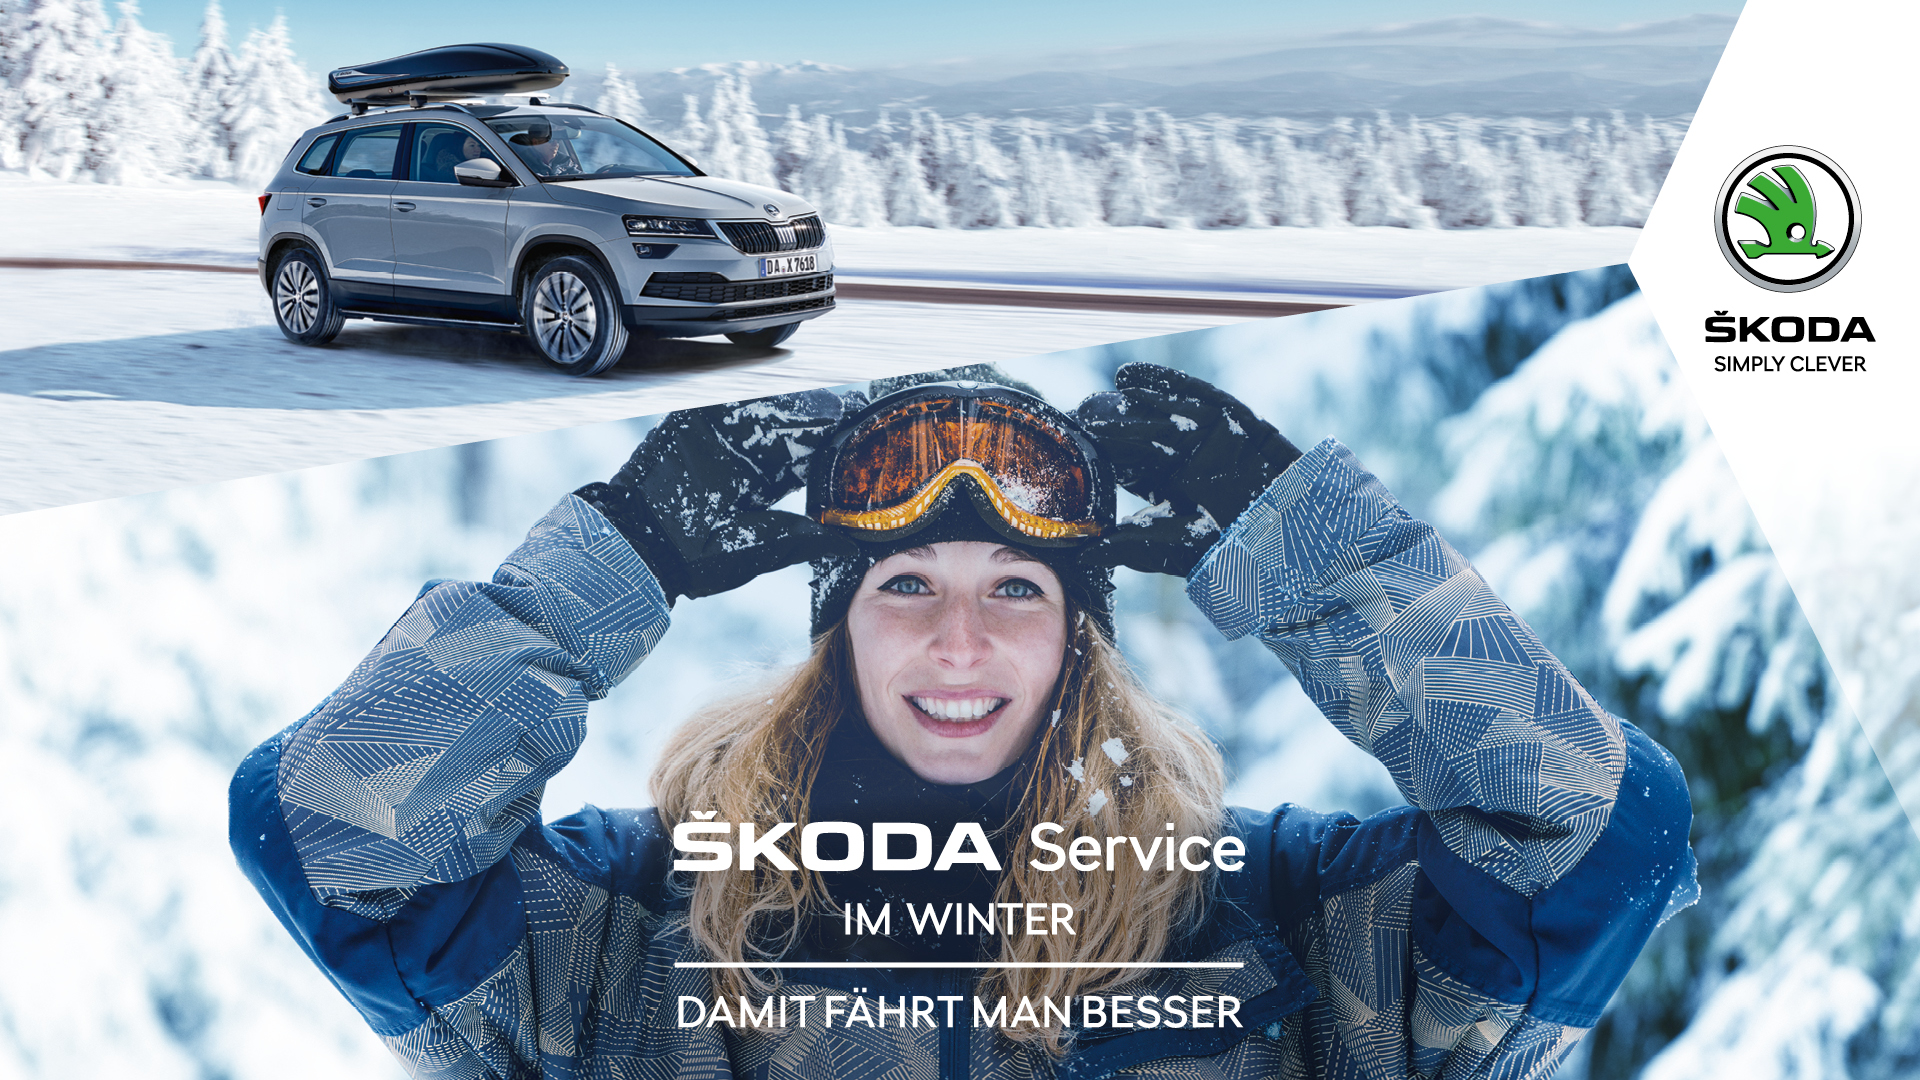 Skoda – Service im Winter